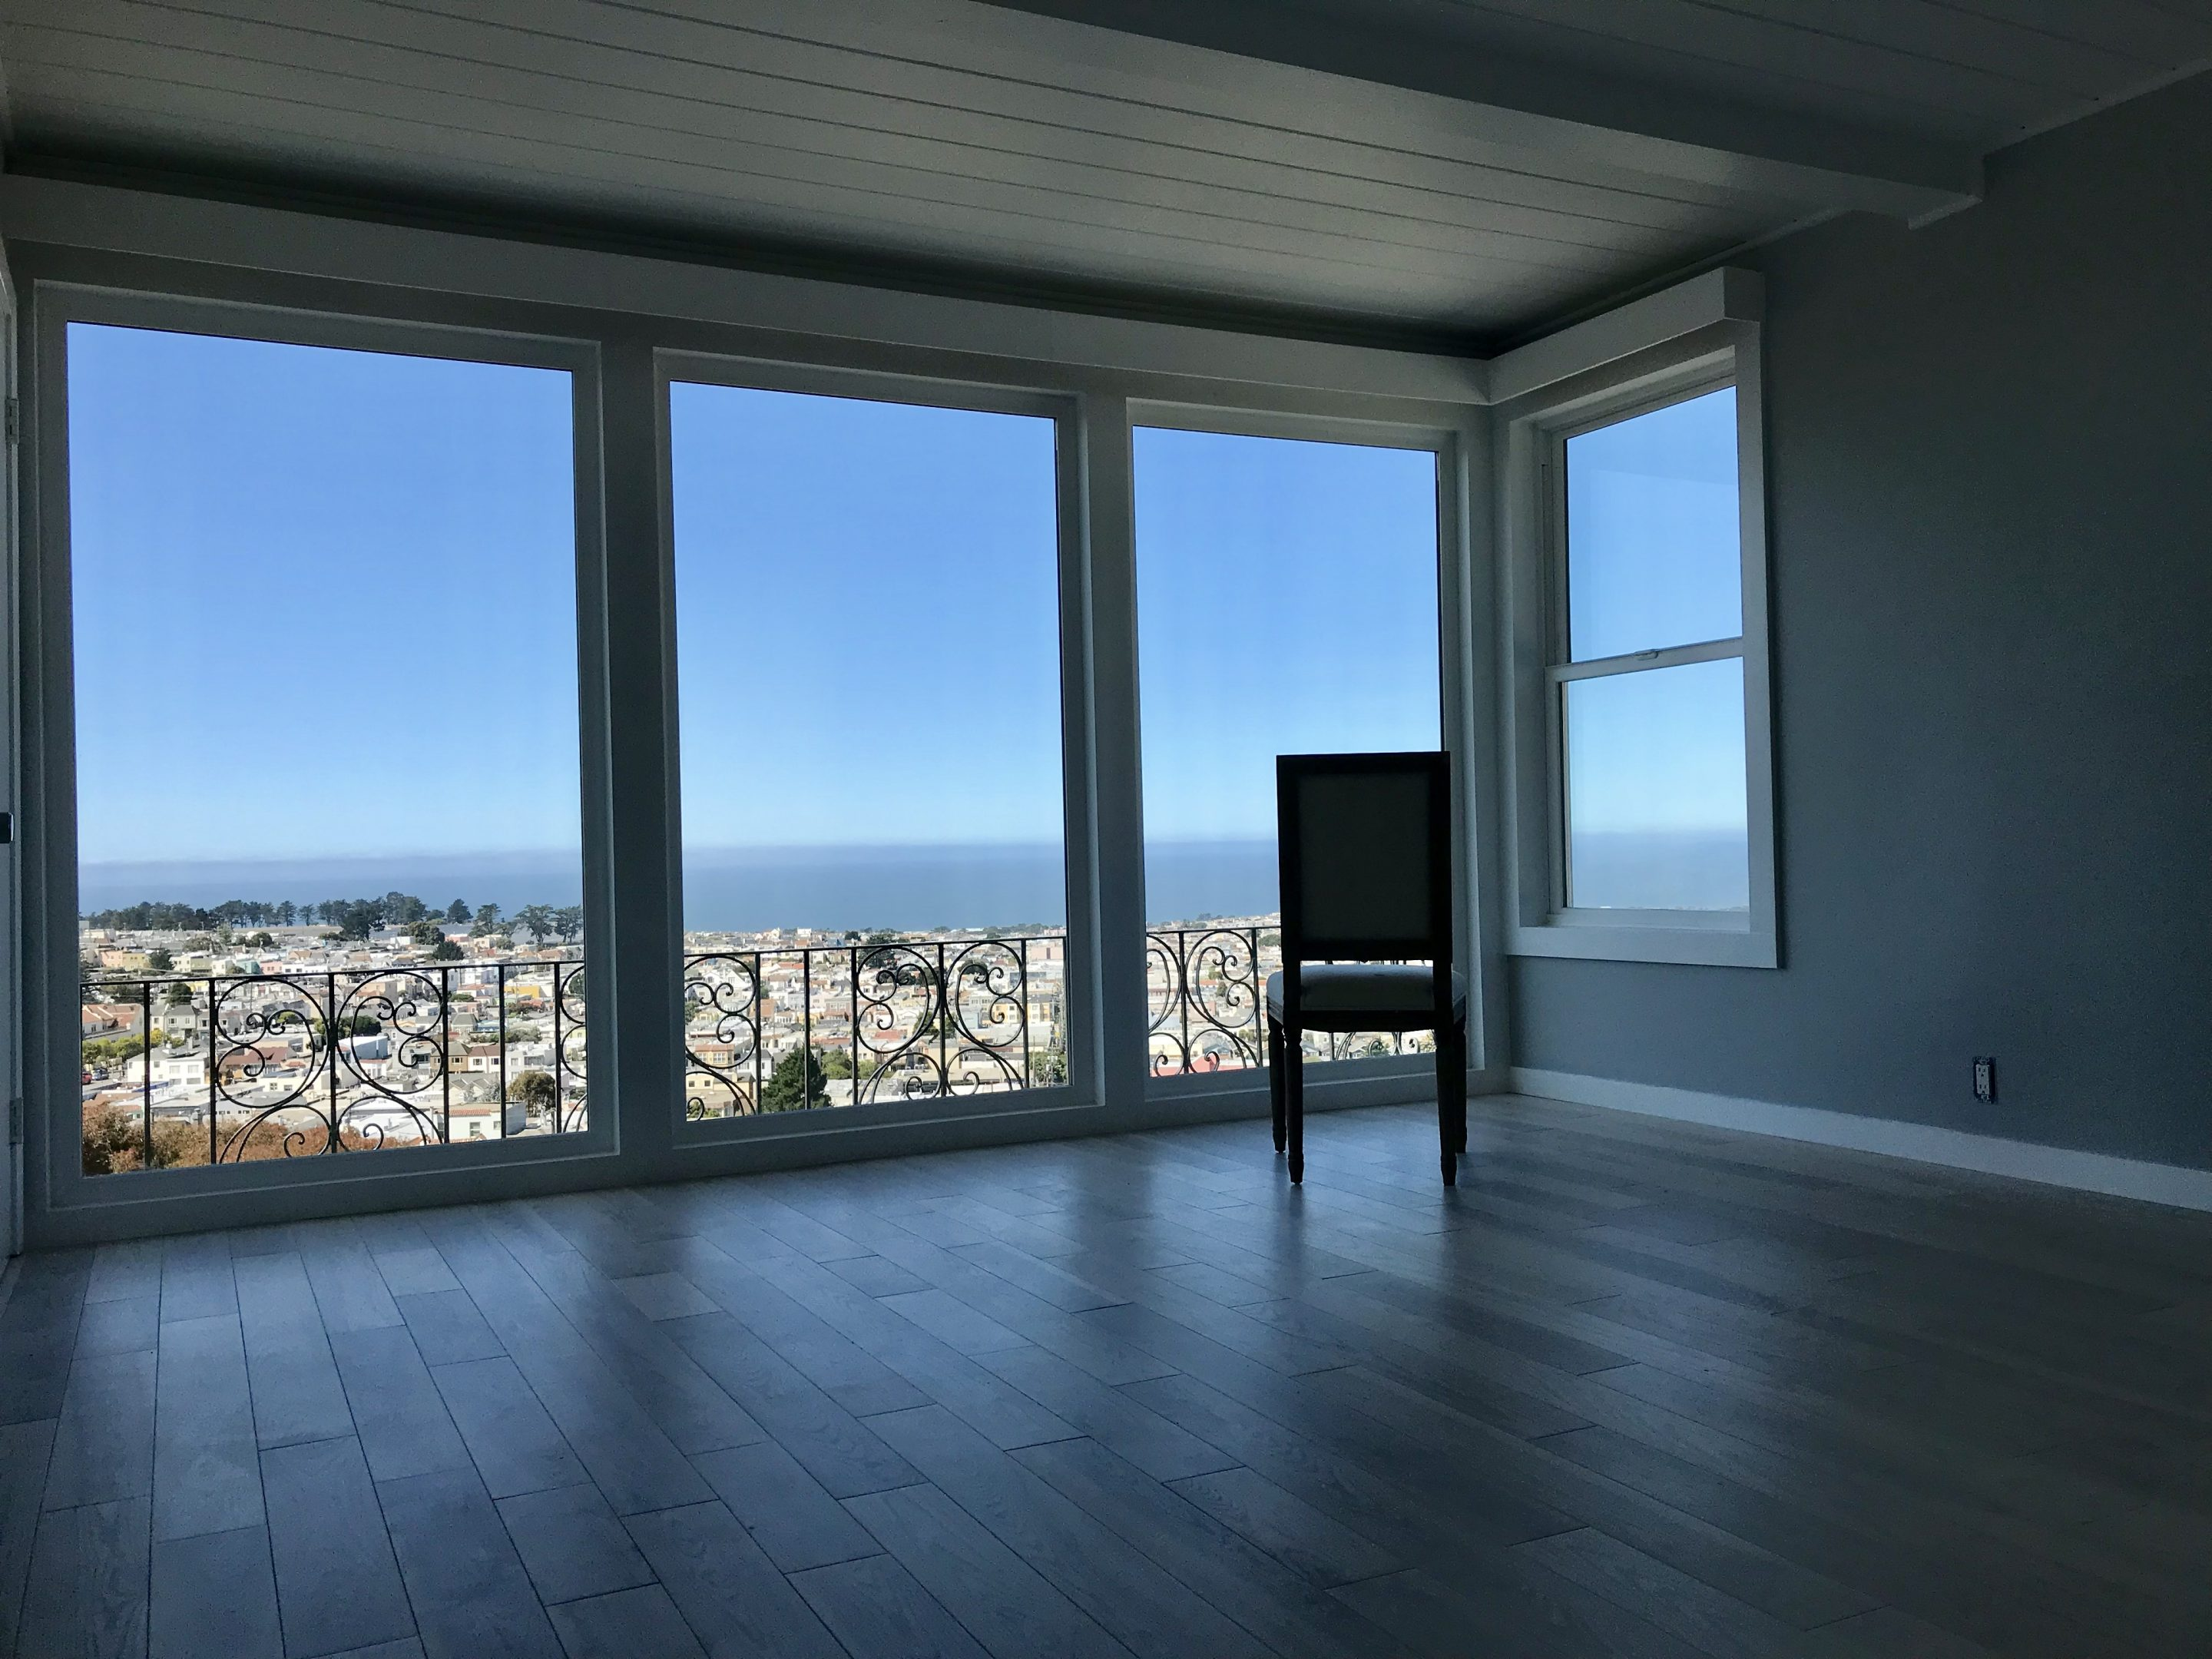 Panoramic Ocean View single family homes In Golden Gate Heights, San Francisco are one of the best buying opportunities ever